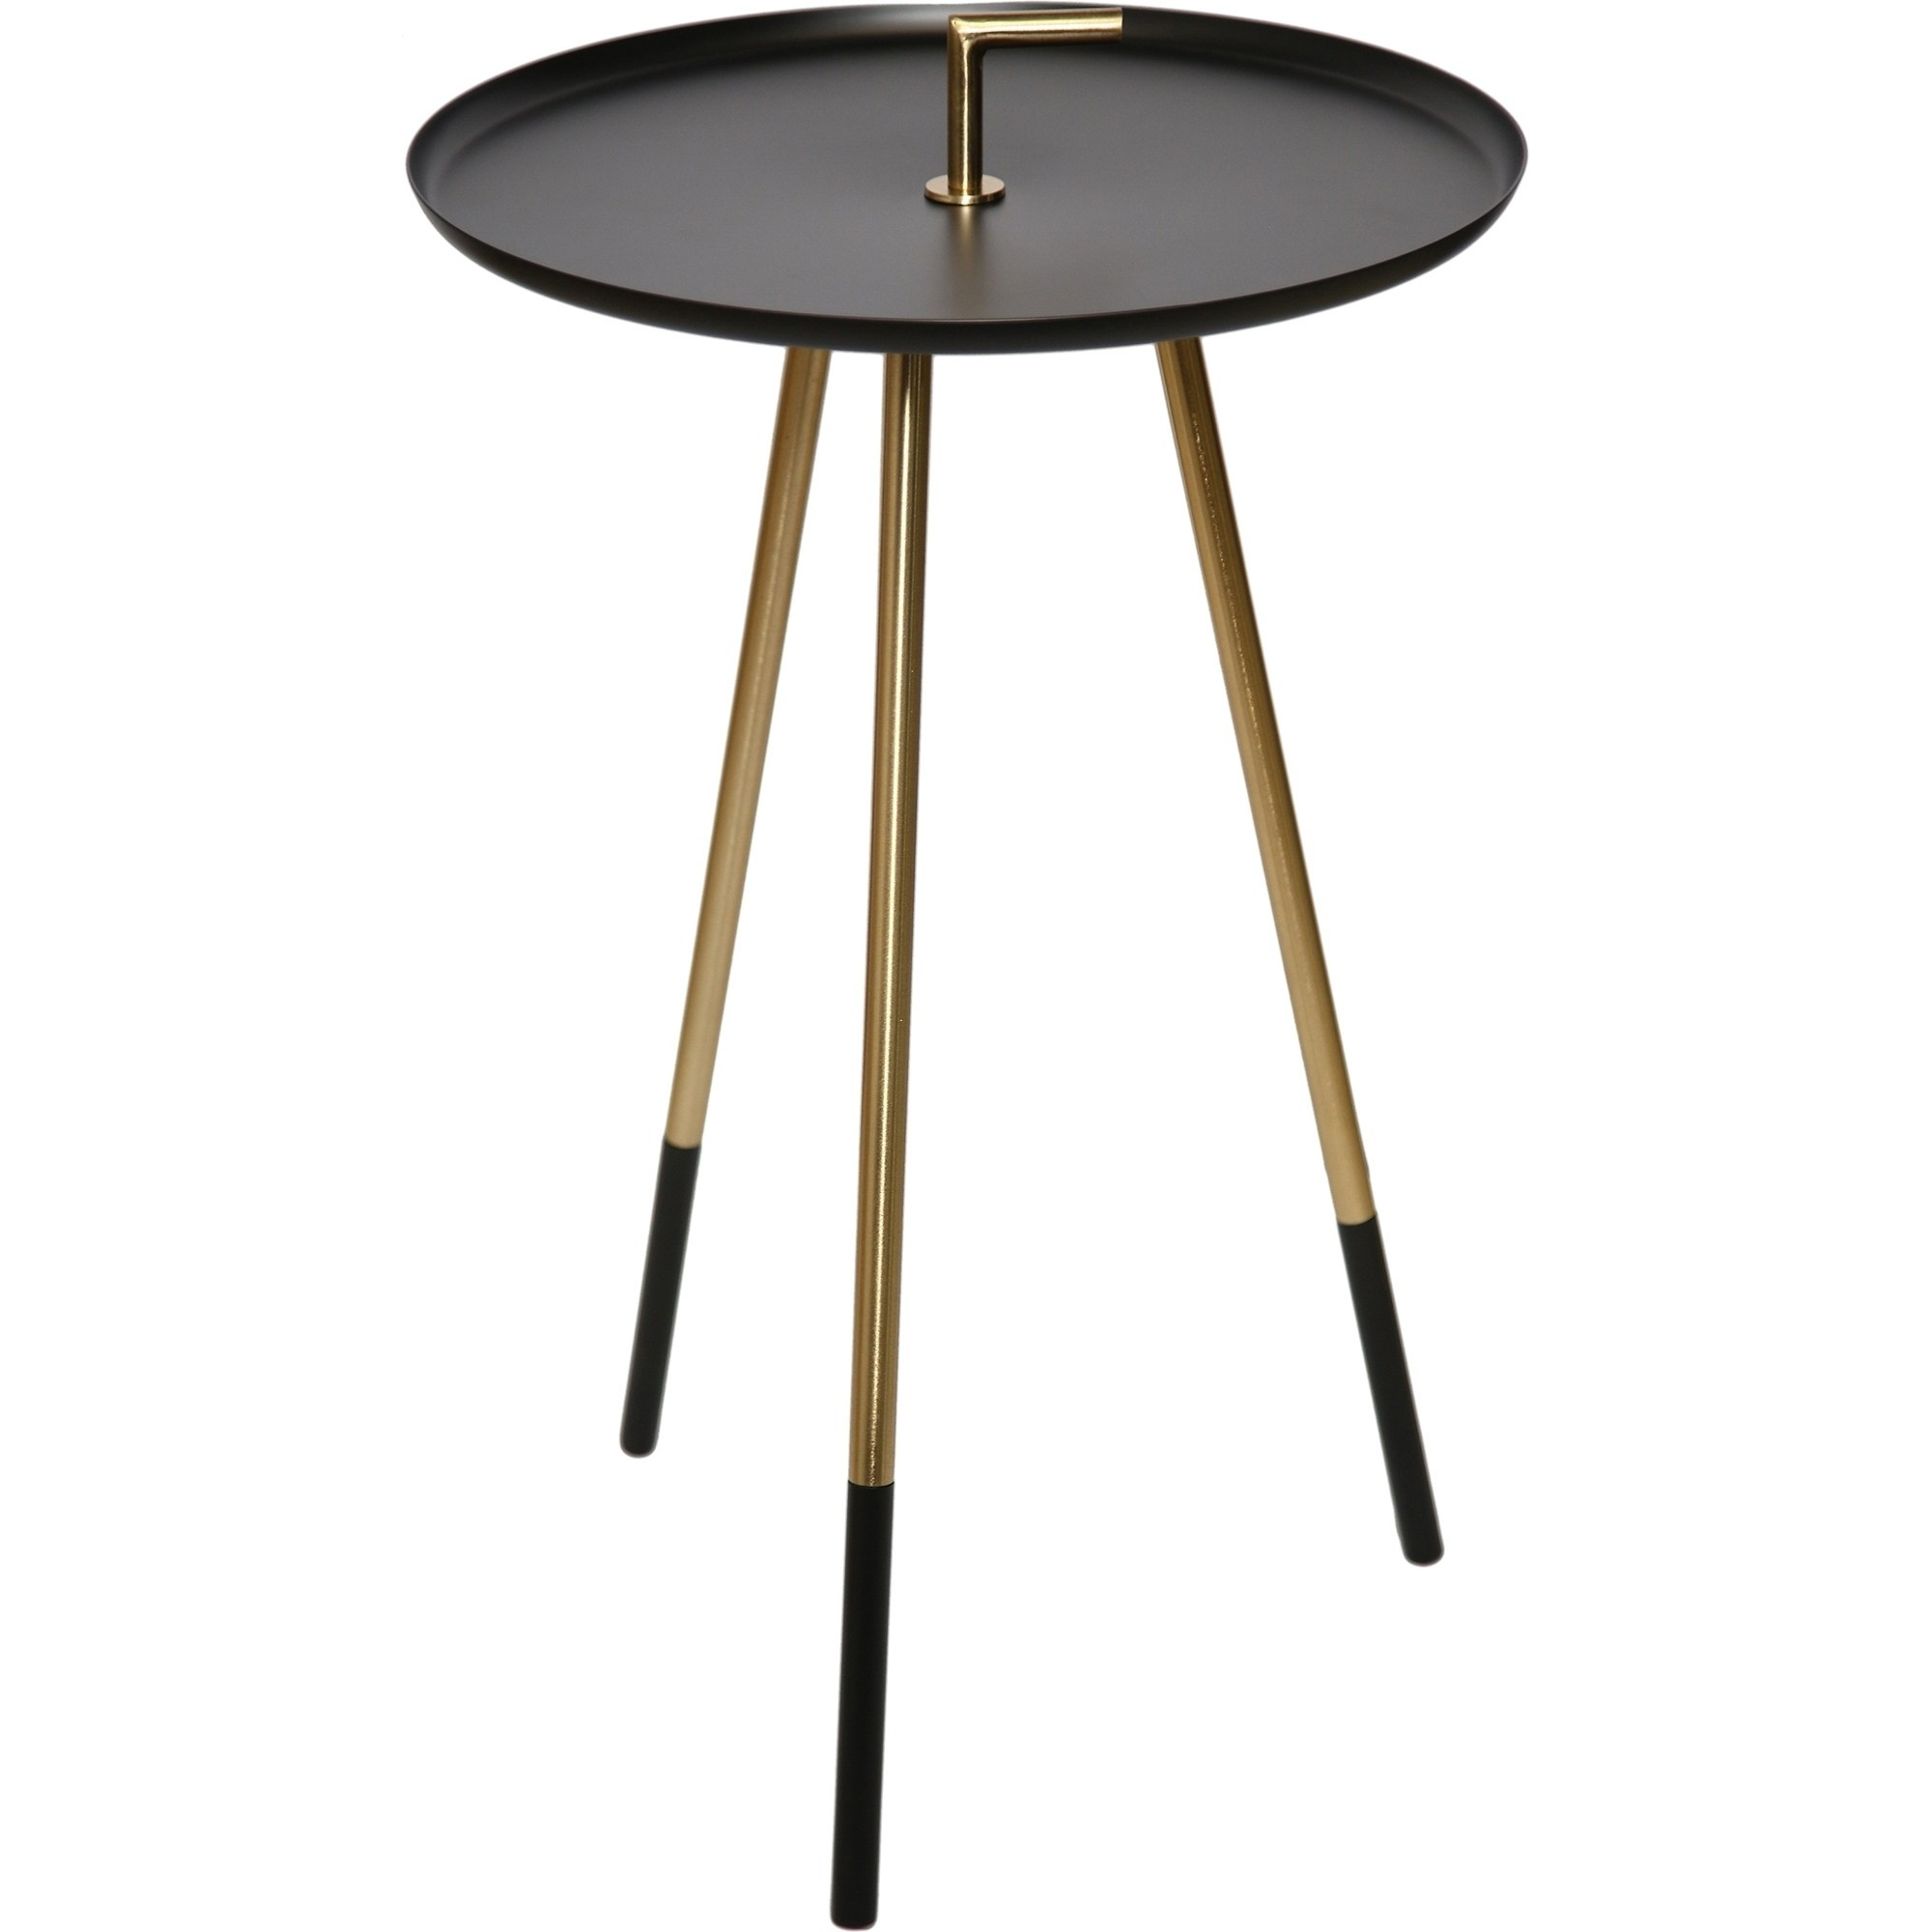 renwil botkins black and goldtone iron folding modern accent gold table free shipping today antique marble side pier one imports dining room sets square espresso coffee mirimyn